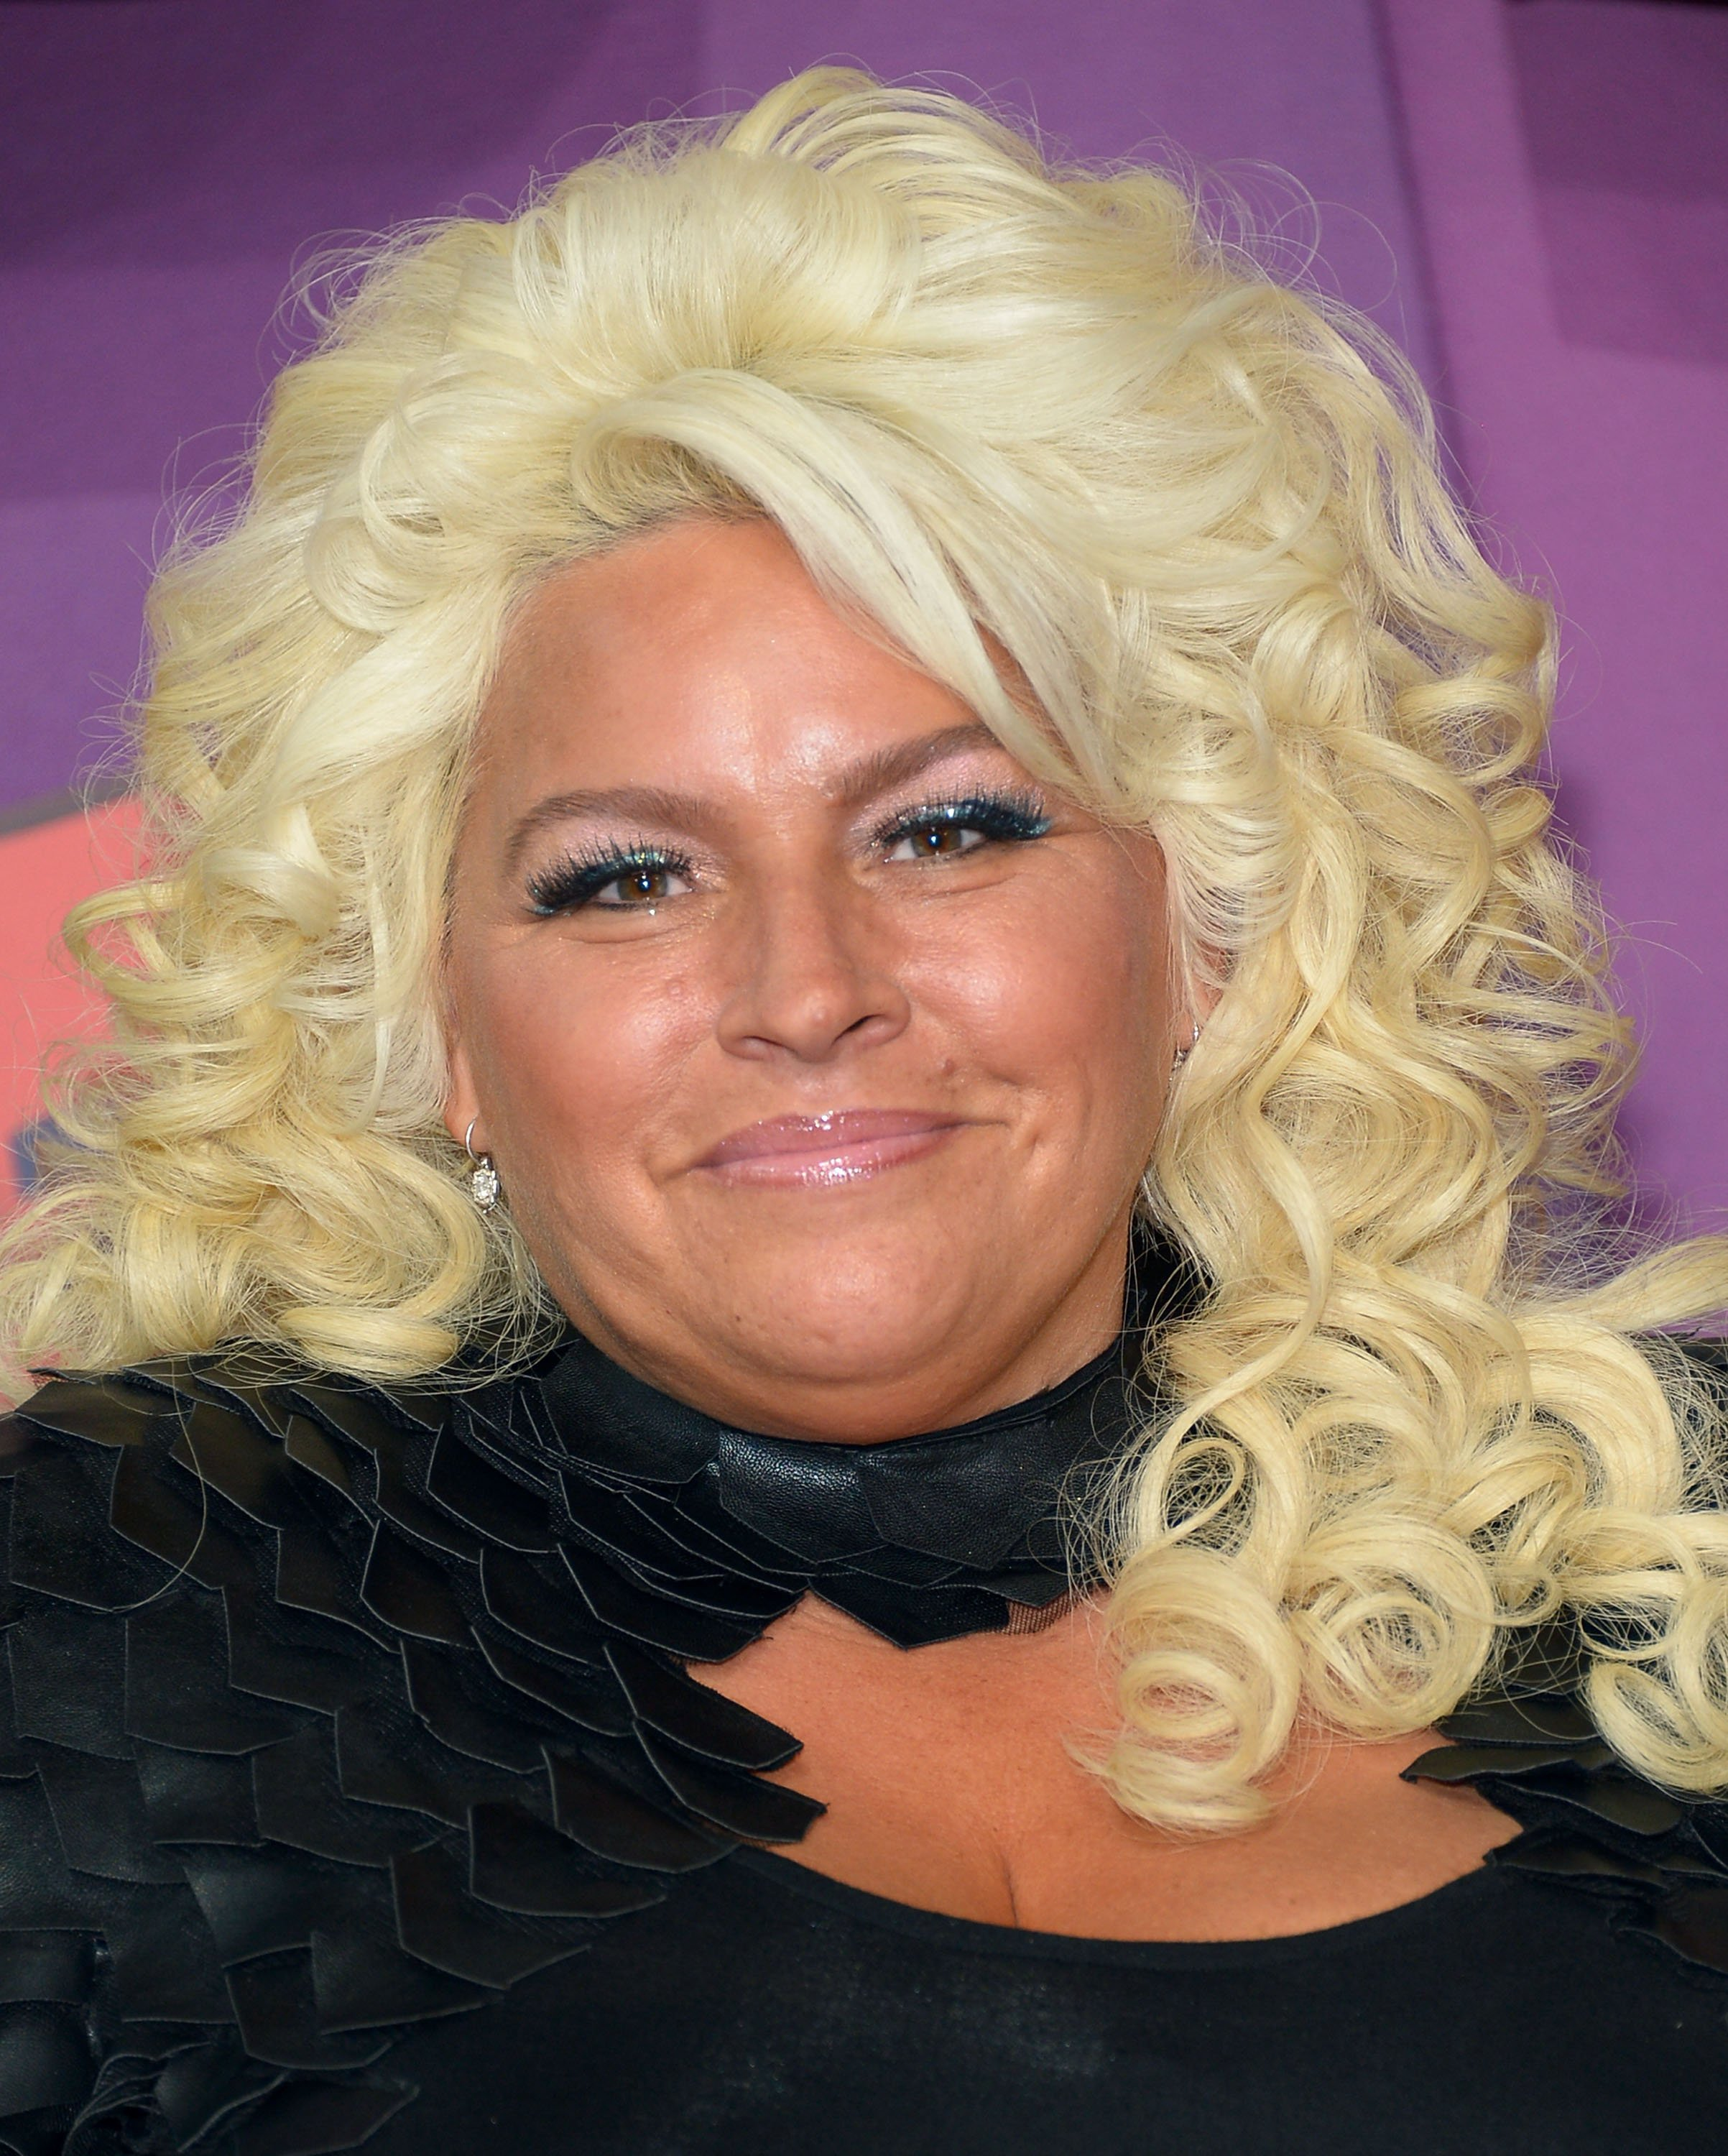 Beth Chapman at the CMT Music awards at the Bridgestone Arena on June 4, 2014 | Photo: Getty Images